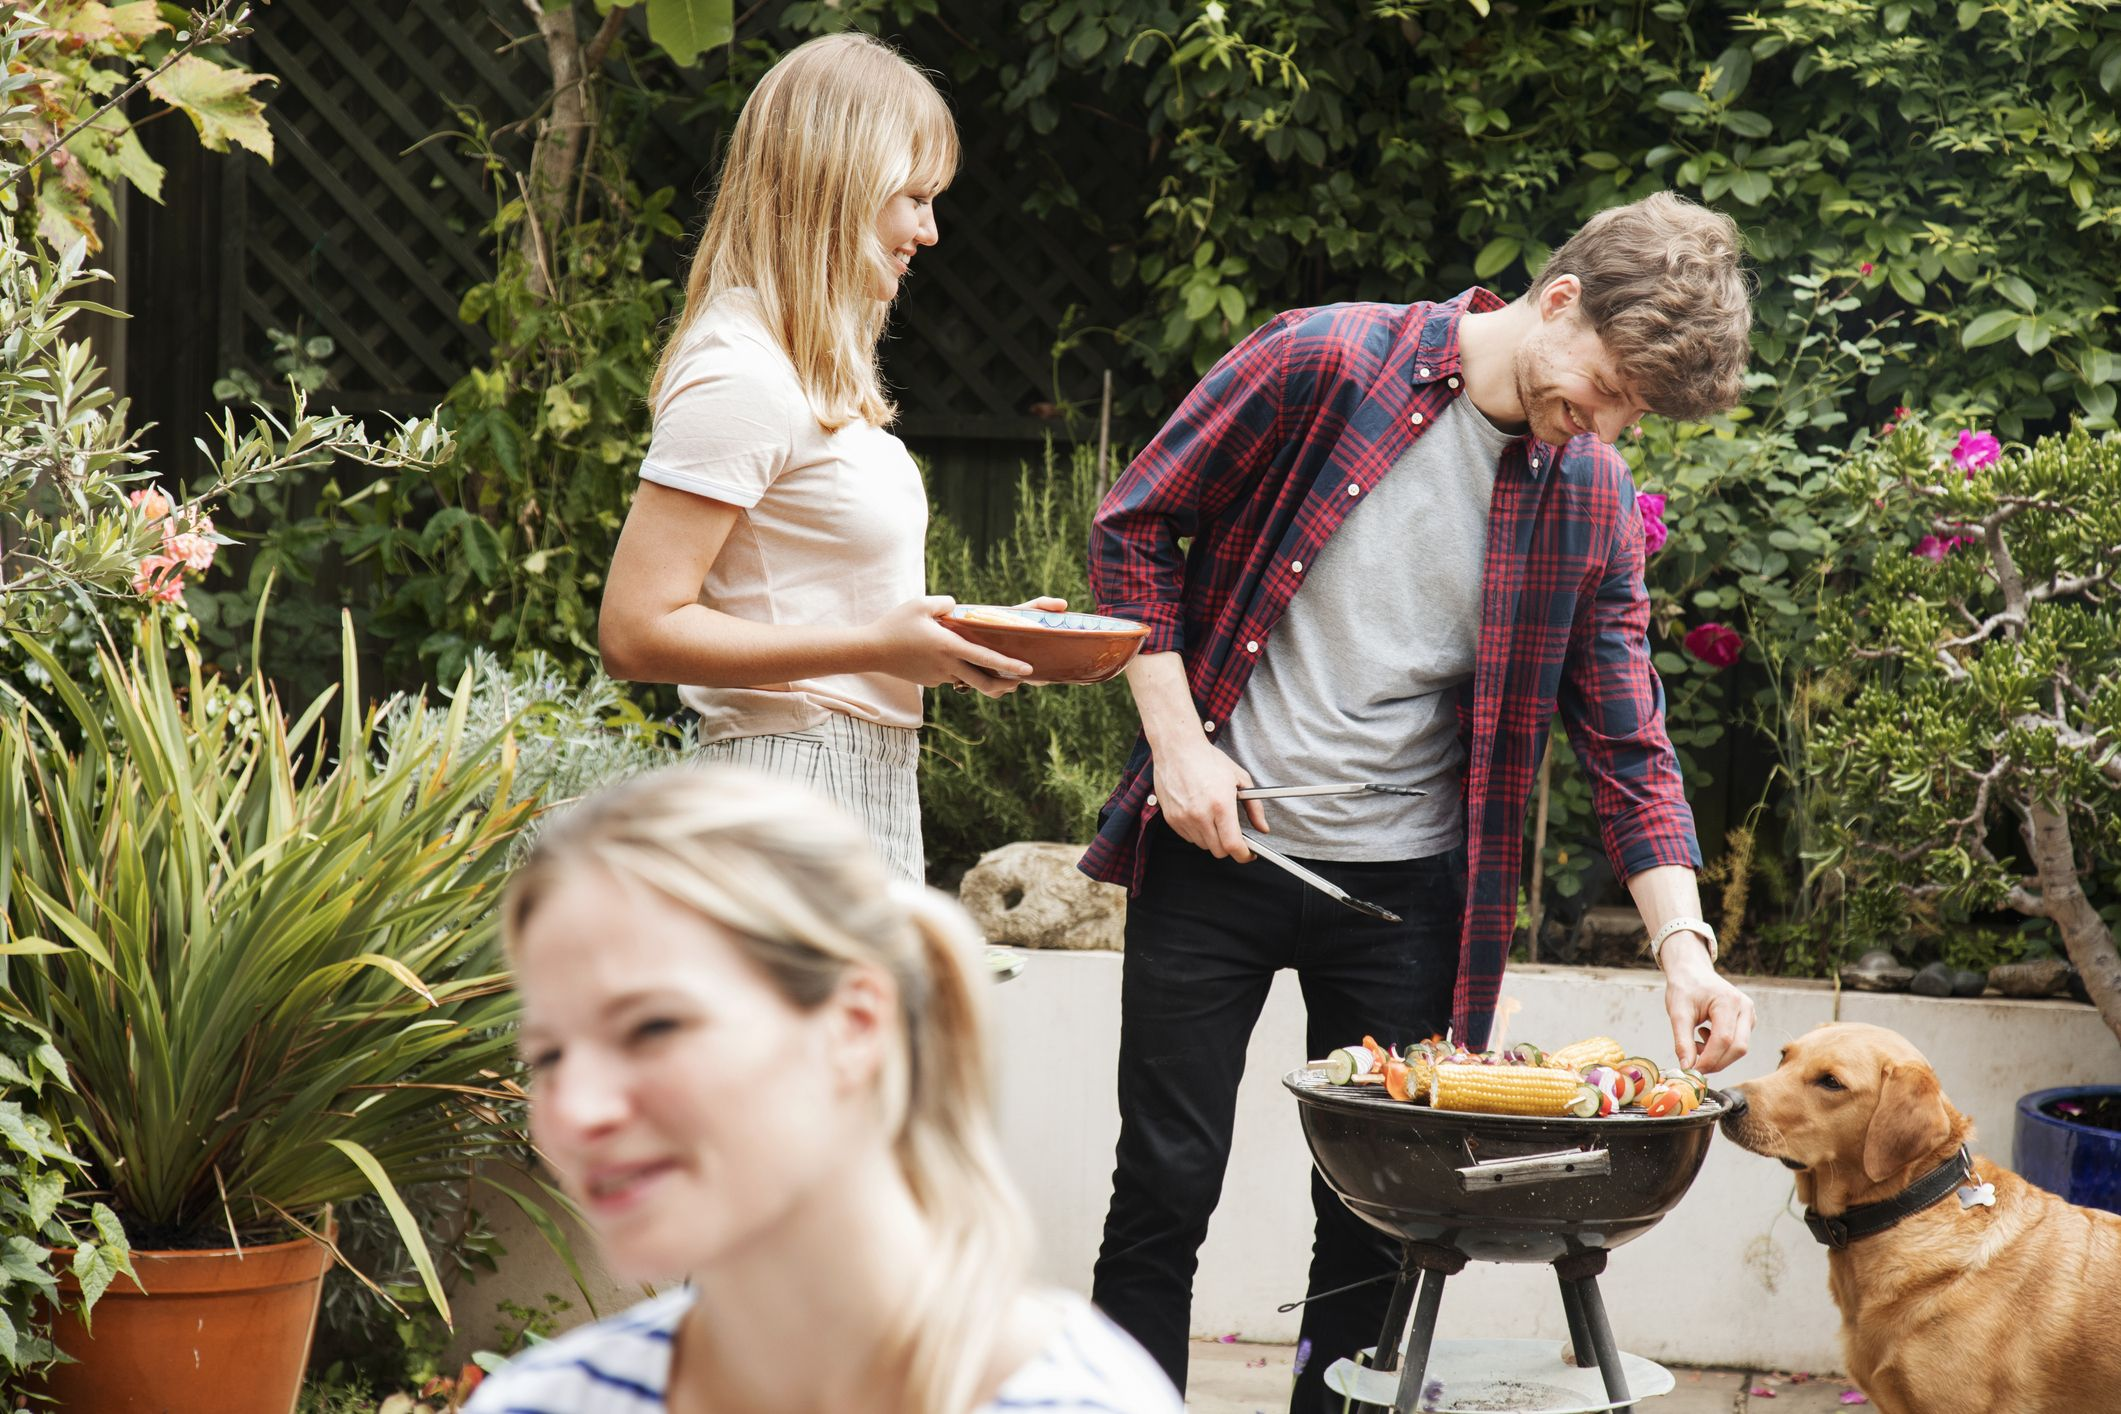 Friends prepare food on barbecue while dog looks on at garden party